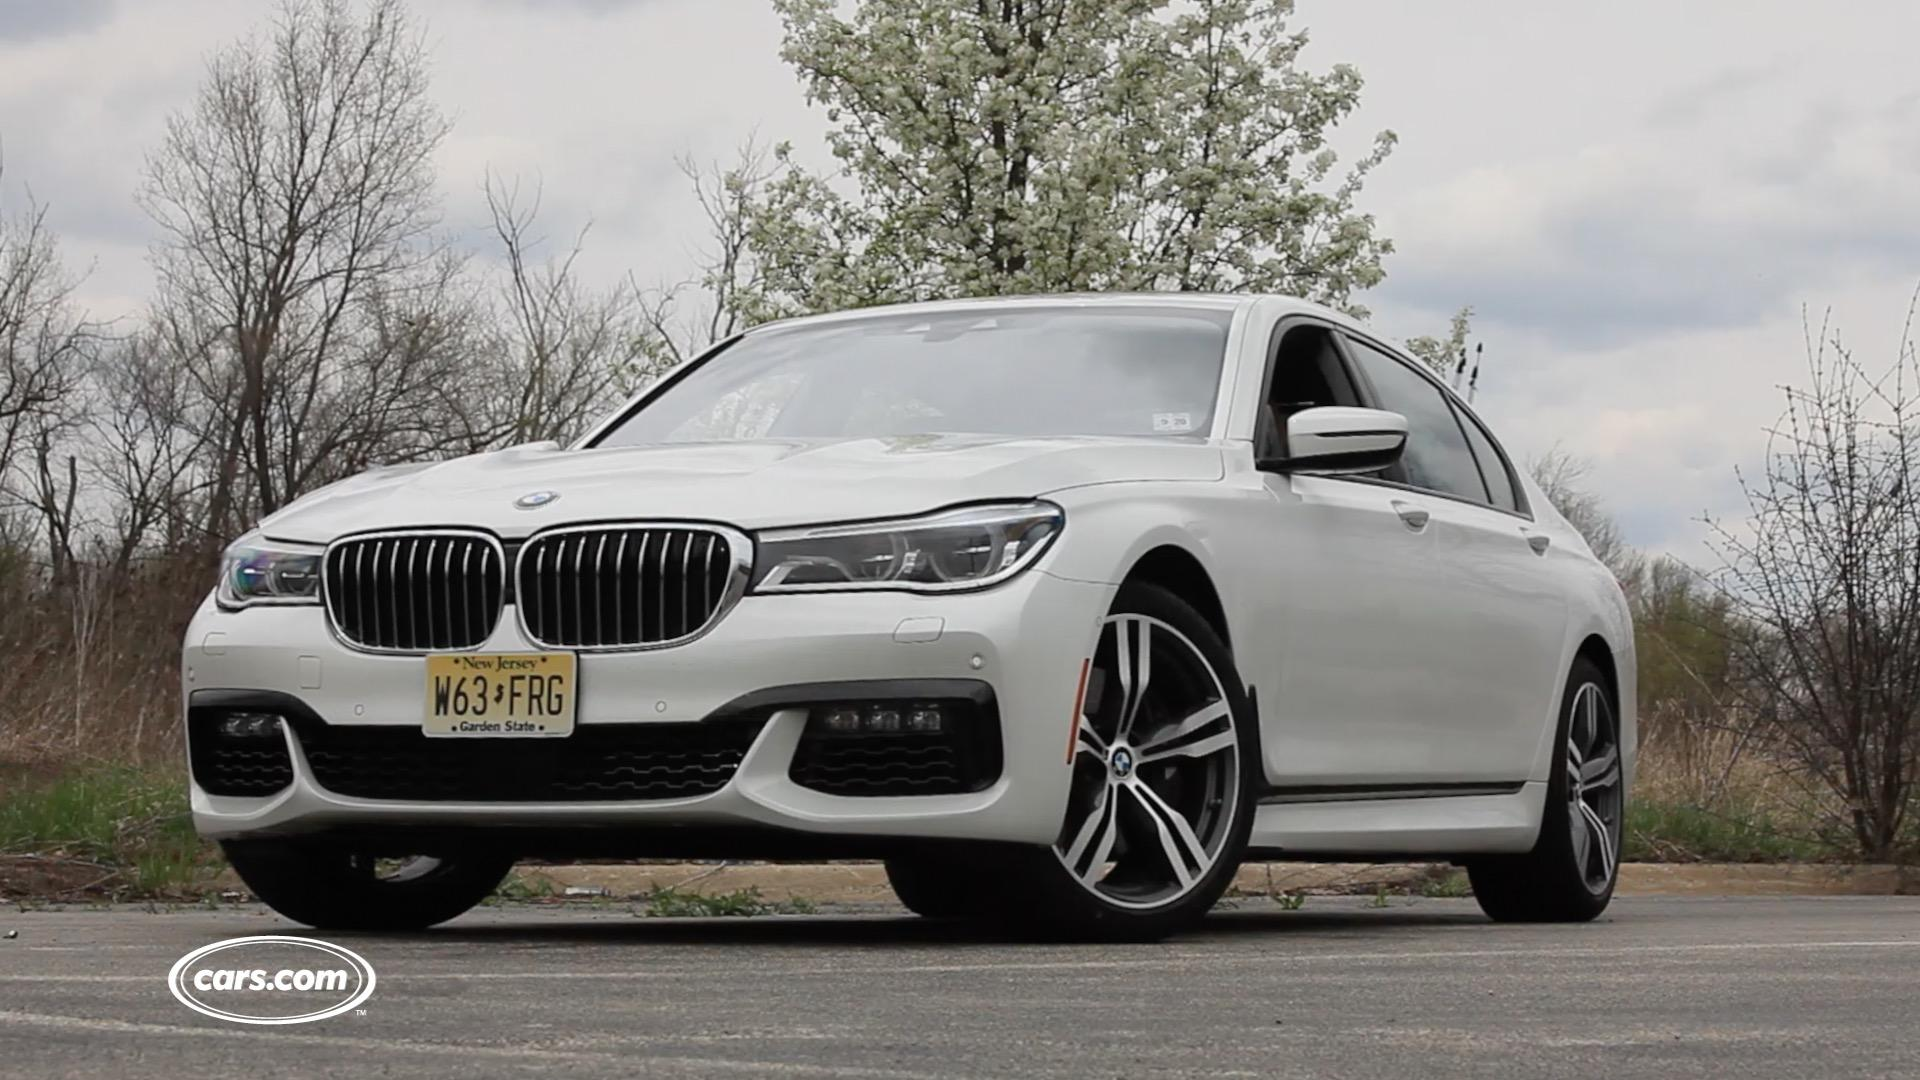 2016 BMW 7 Series Ready to Compete With the Mercedes-Benz ...